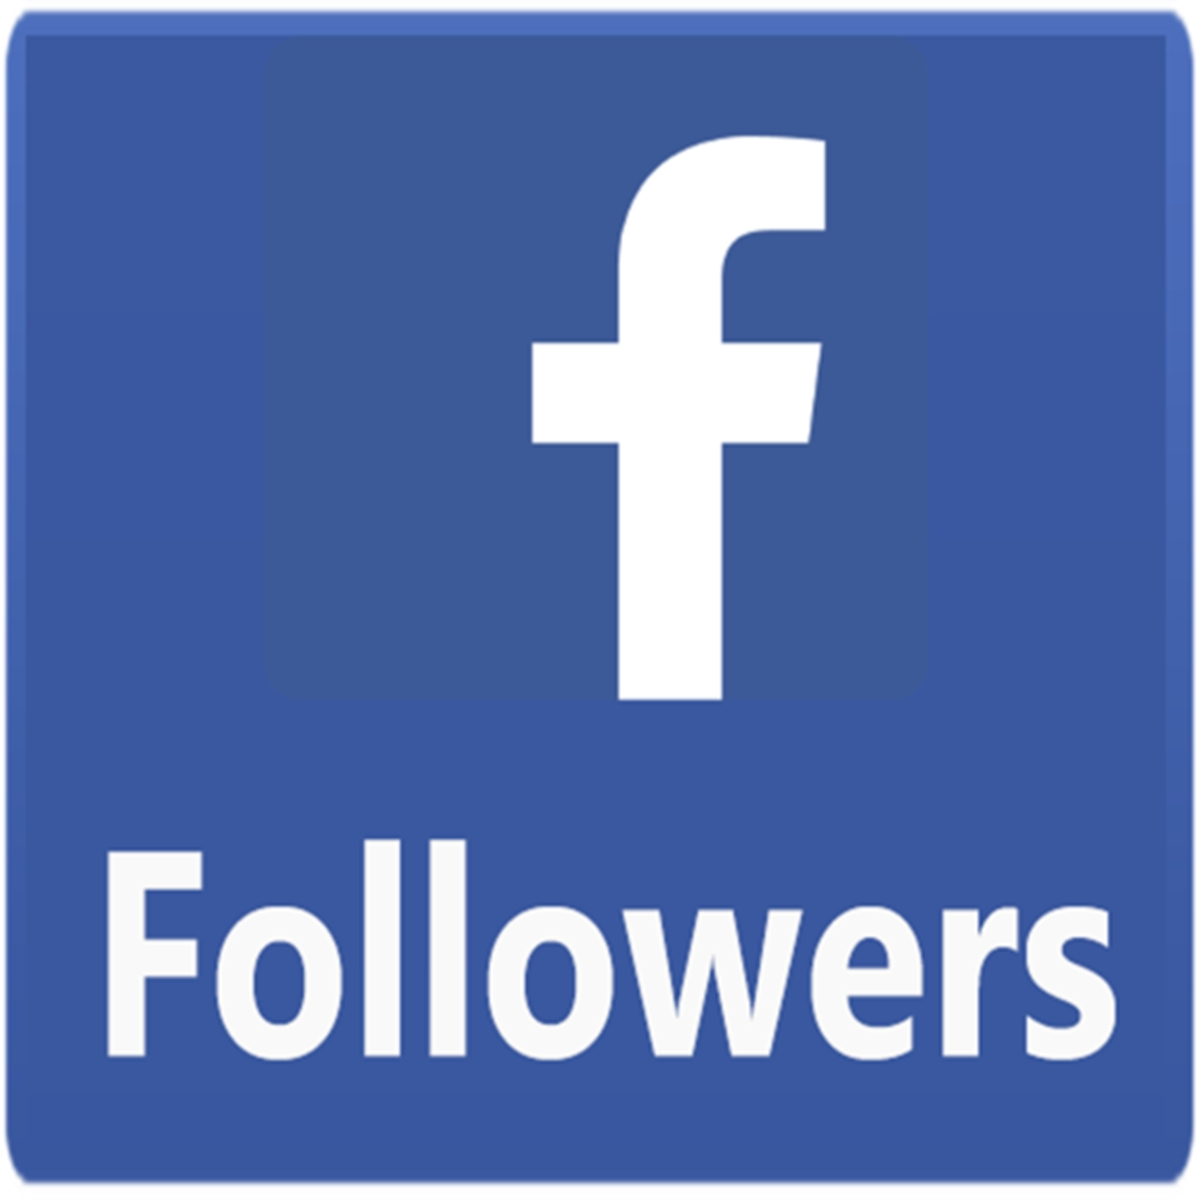 How to allow followers on Facebook